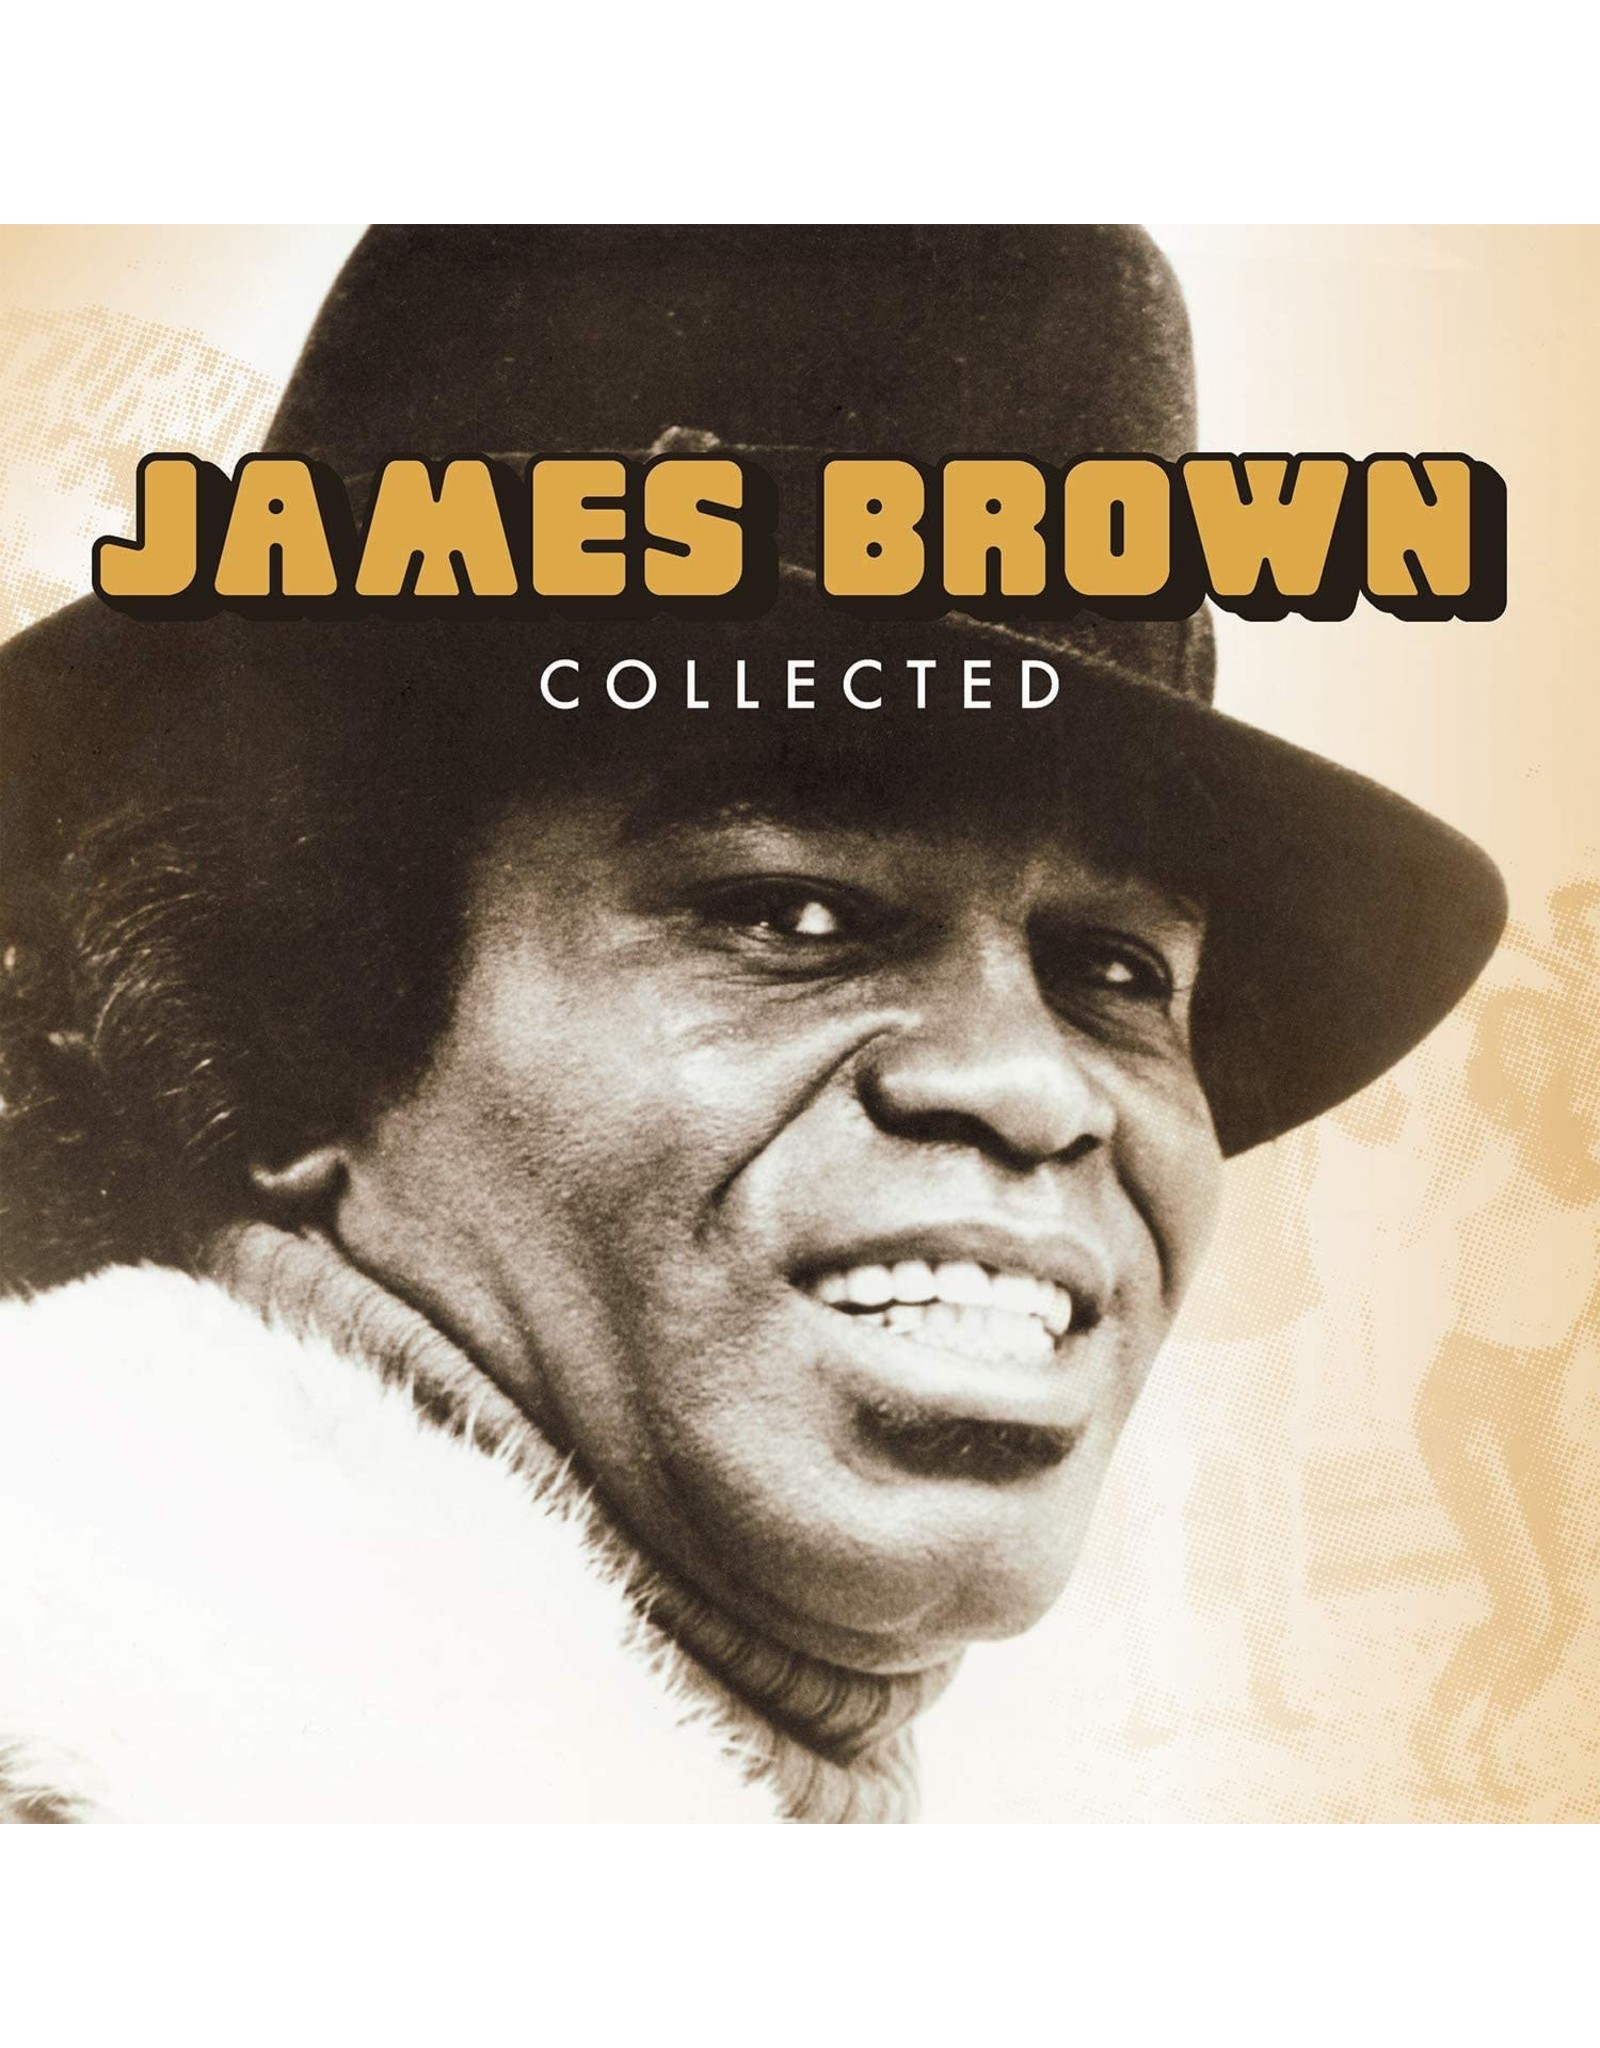 Brown, James - Collected 2LP (MOV)